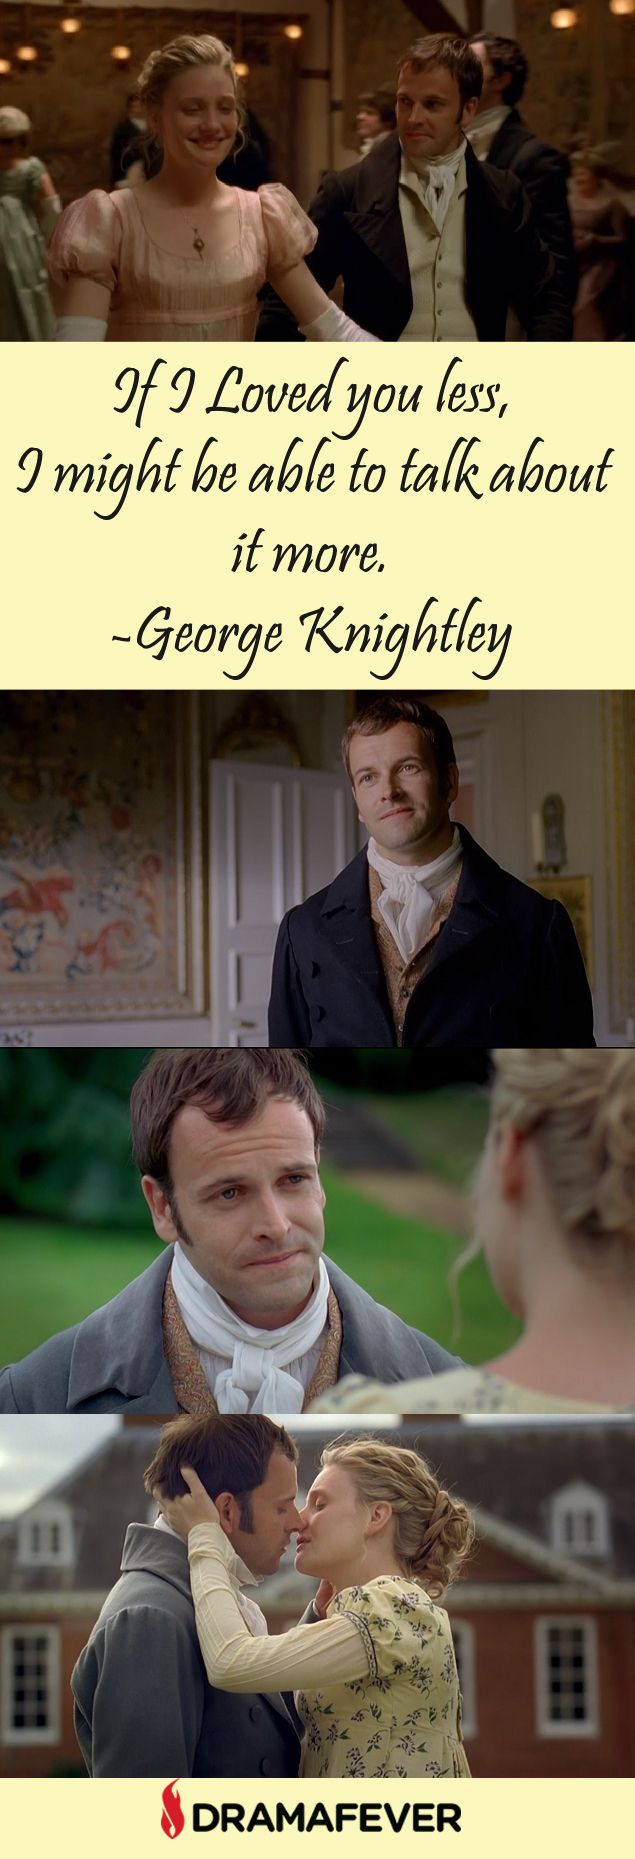 Watch Johnny Lee Miller as the reliable and loving Knightley in the BBC adaptation of Emma.